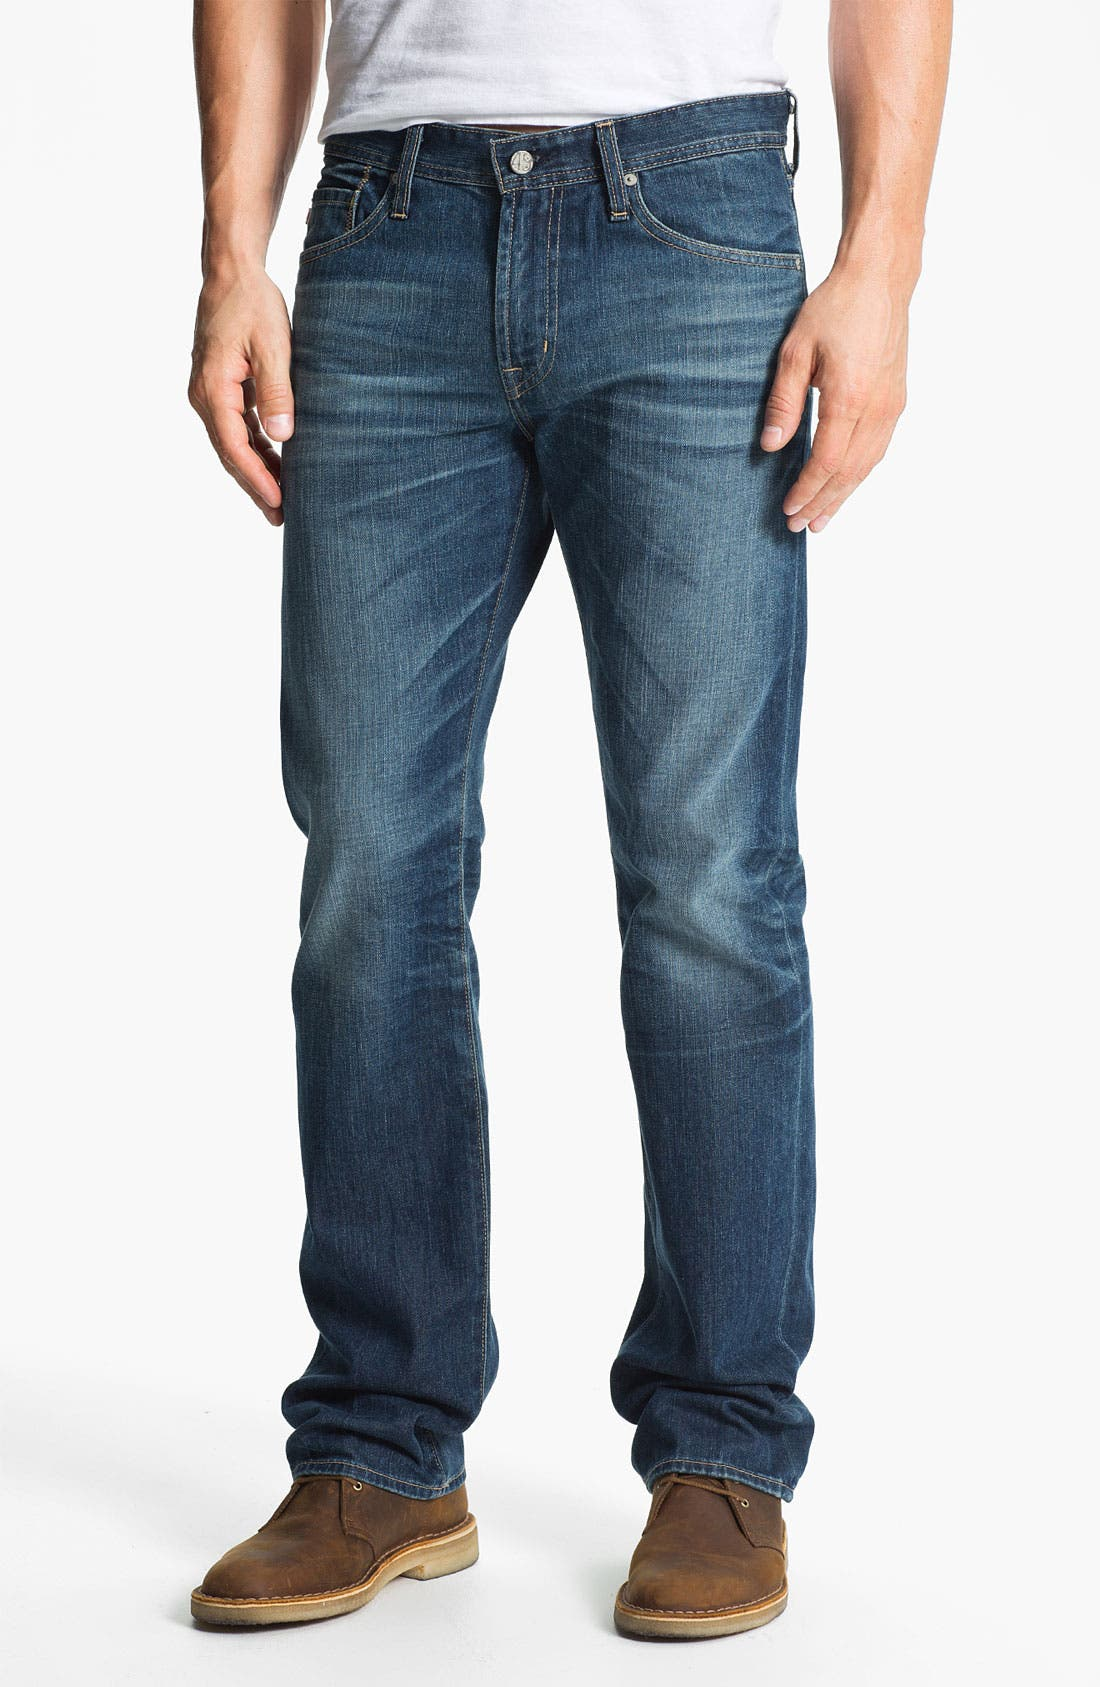 Alternate Image 1 Selected - AG Jeans 'Protégé' Straight Leg Jeans (Thirteen Year Smooth)